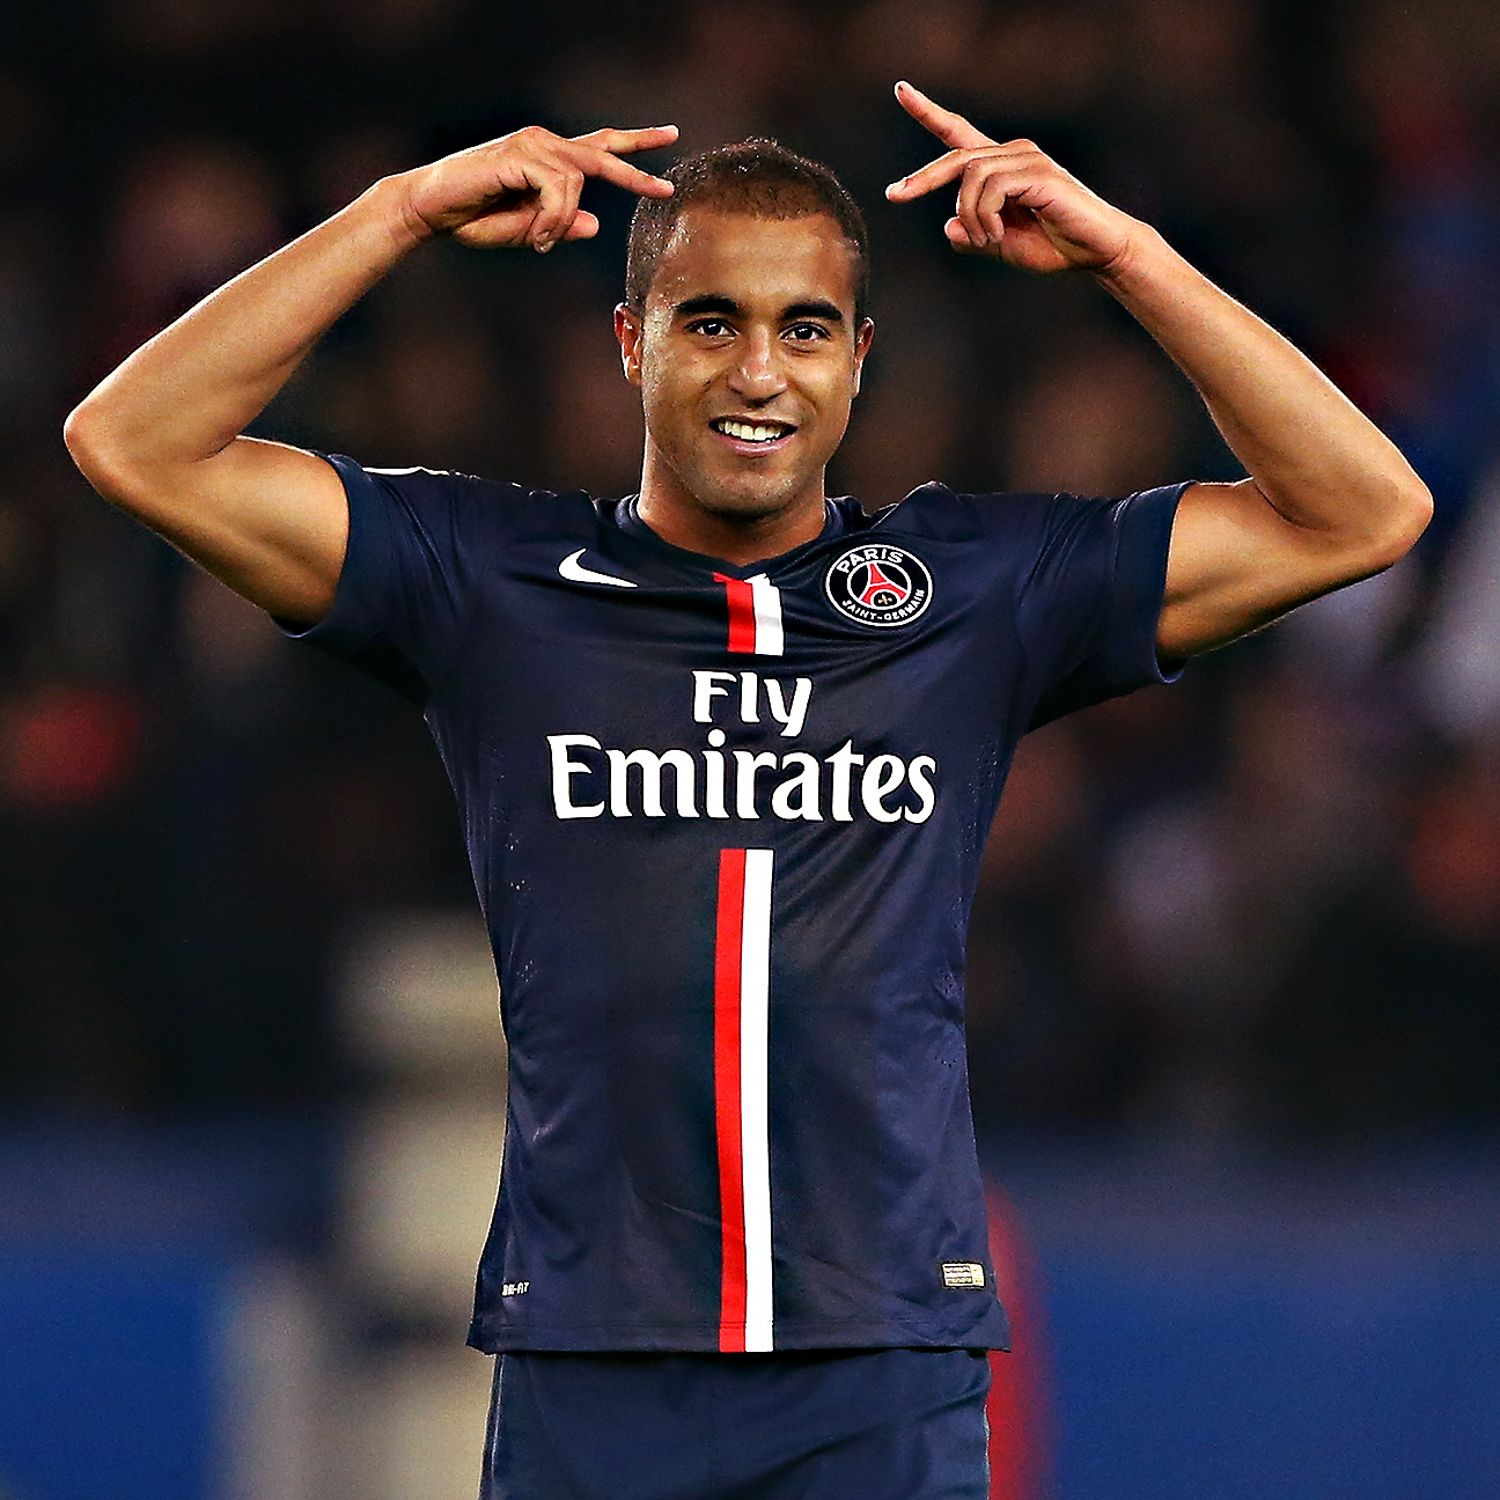 Lucas Moura To Psg Price: Lucas Moura To Miss PSG's Next Six Matches At Least After